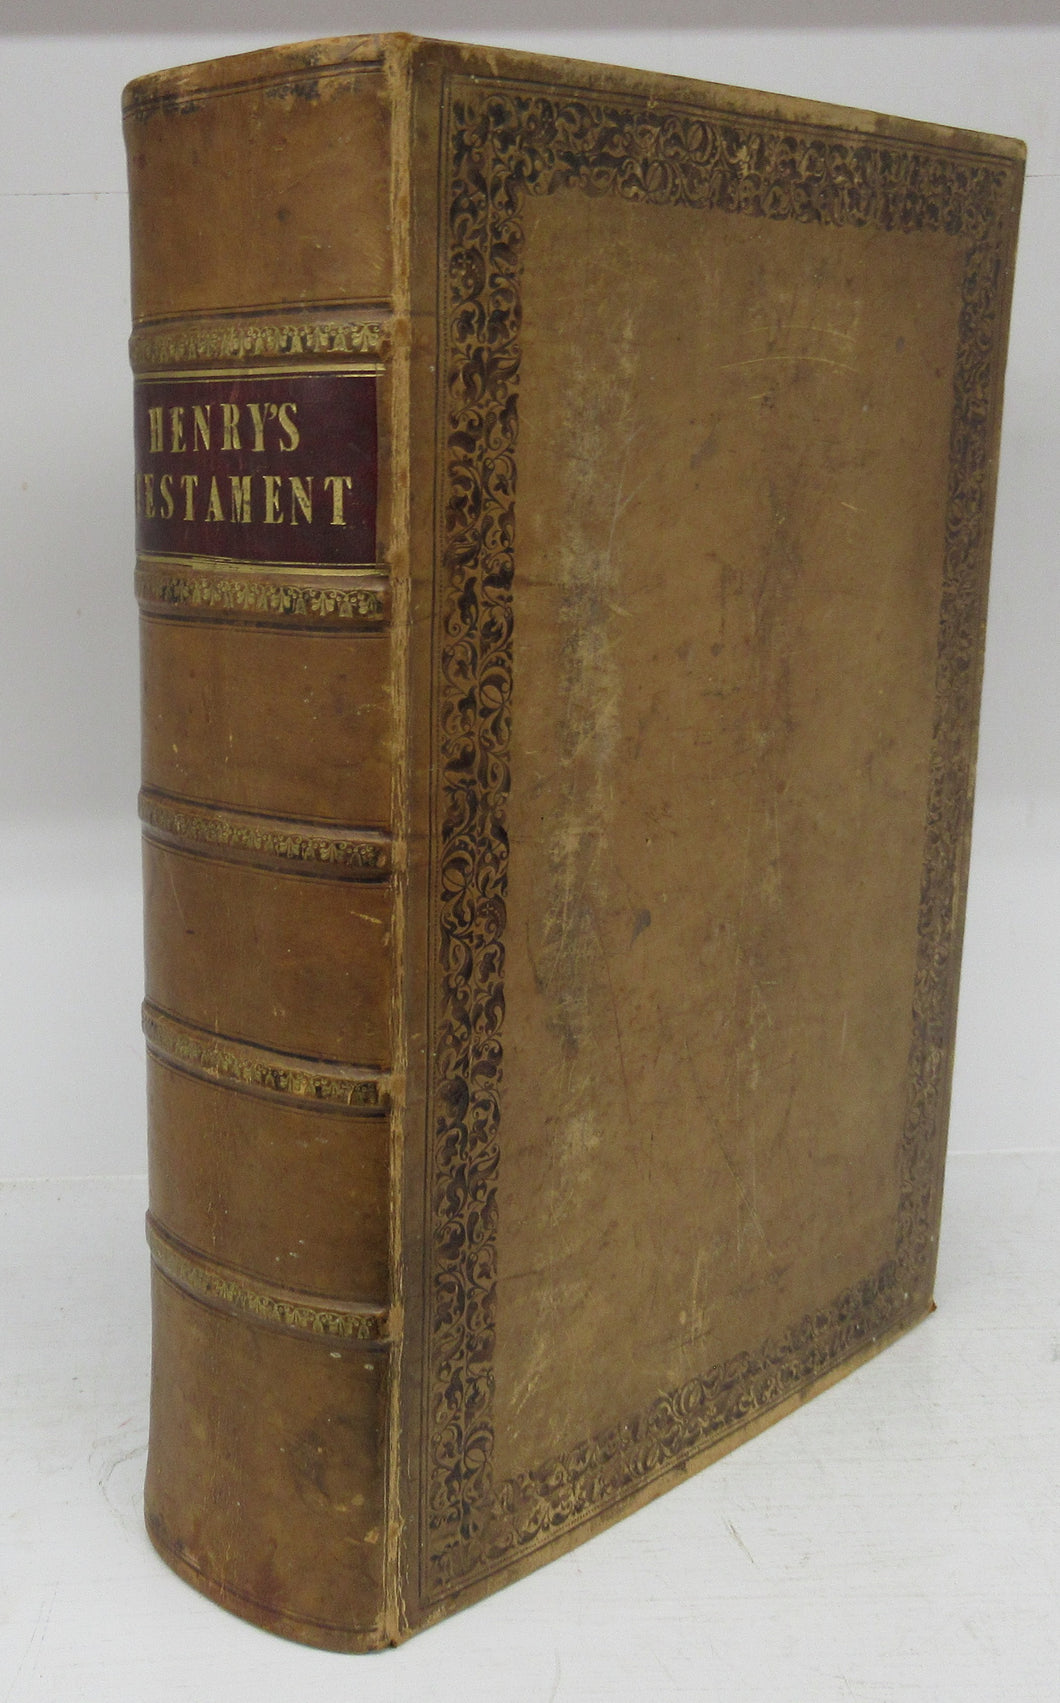 Comprehensive Edition of Matthew Henry's Commentary. New Testament